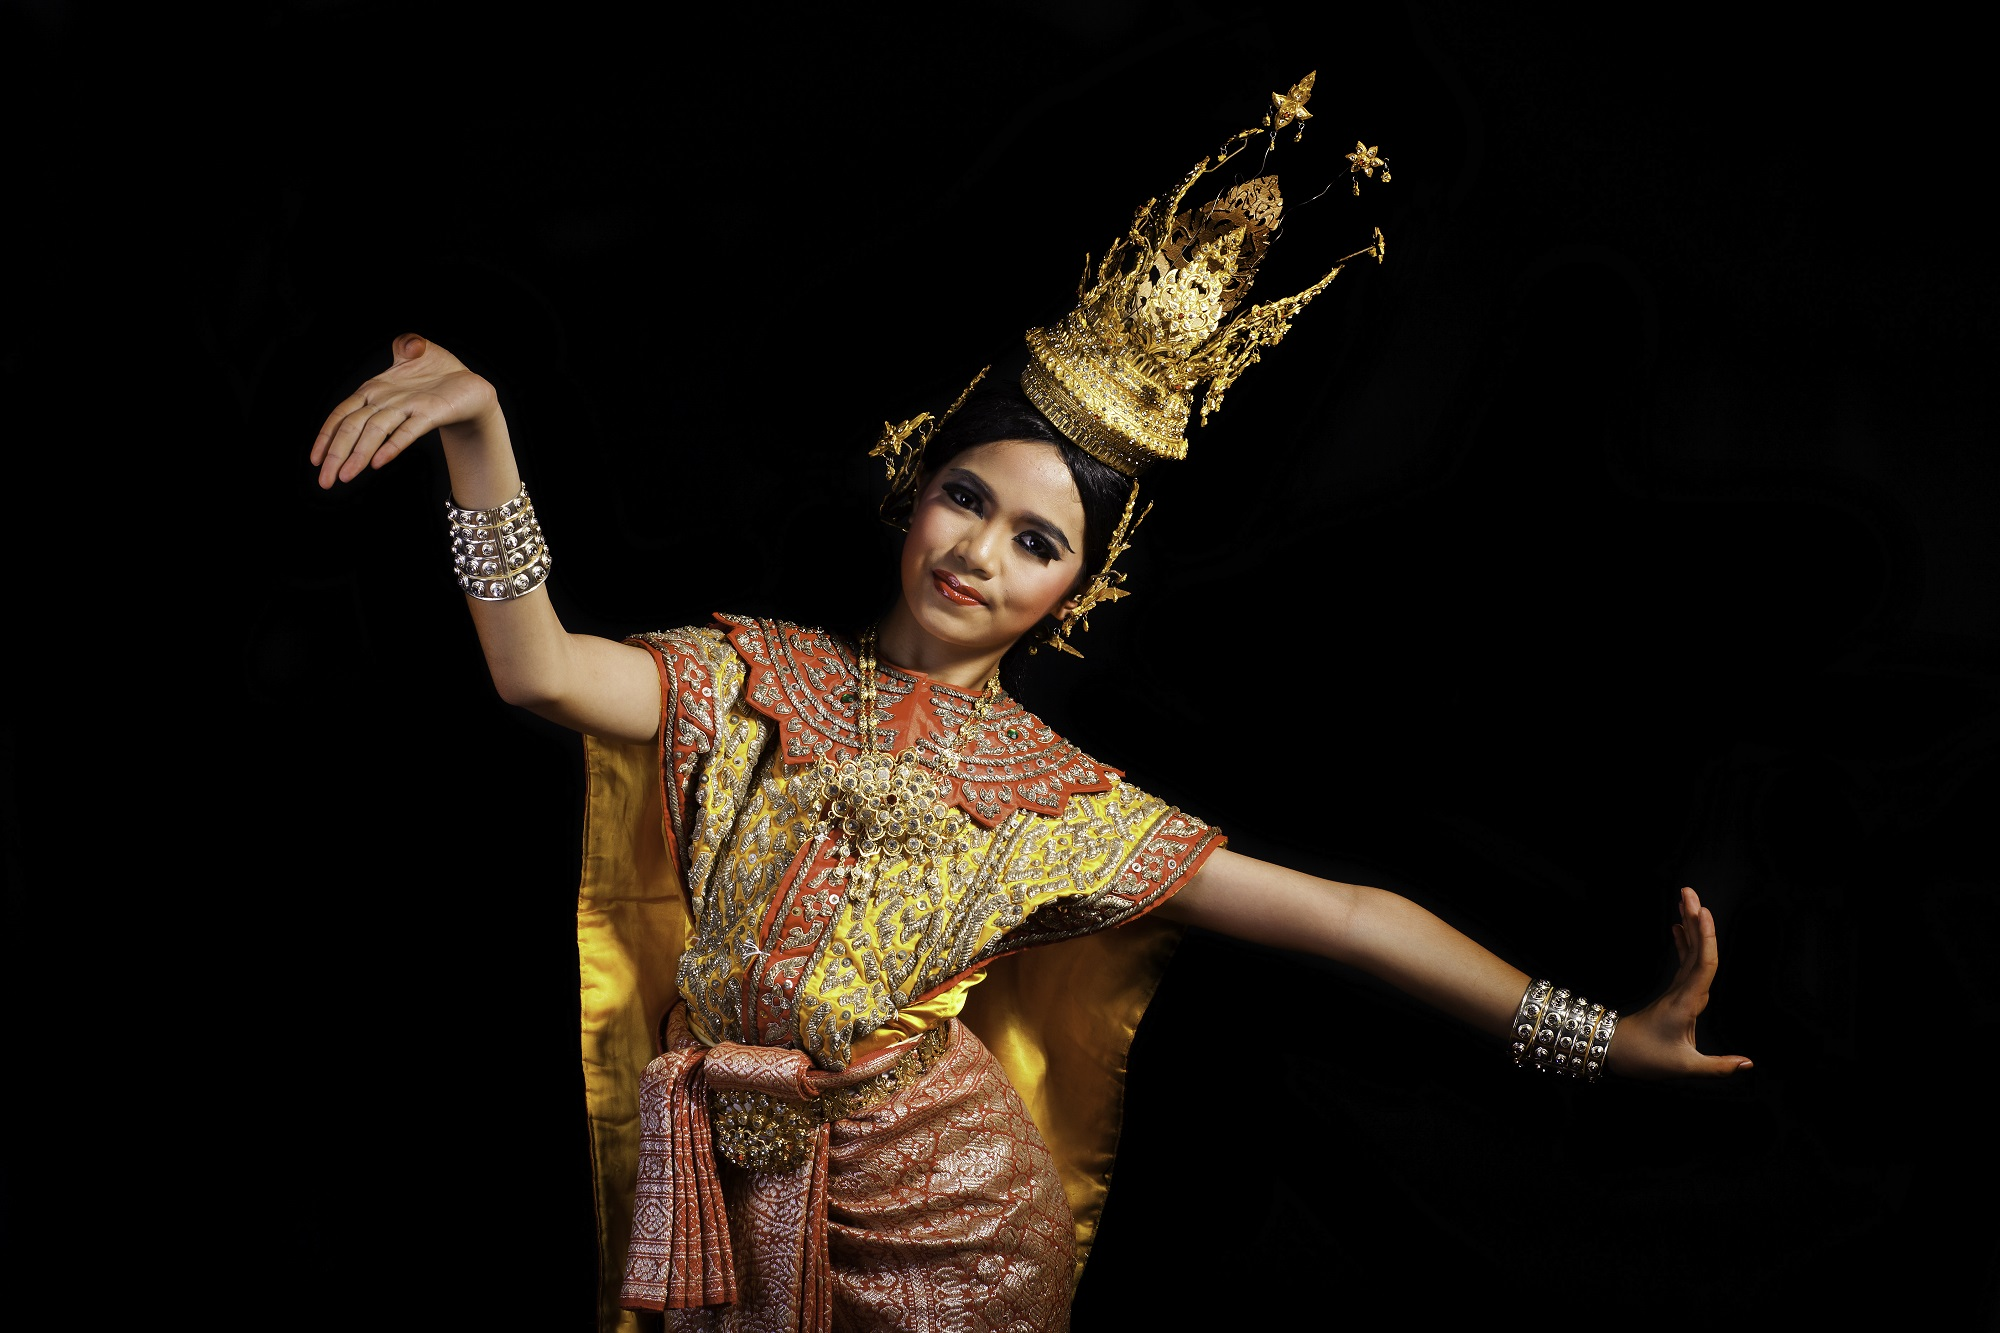 Thai traditional dancer. Photo: nattanan726/Shutterstock